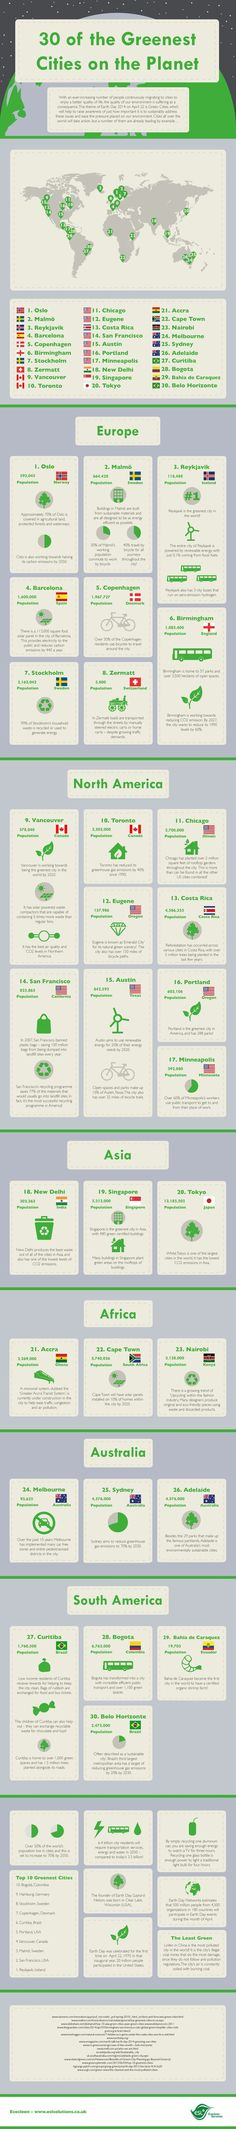 Ecocleen celebrates Earth day by highlighting the most sustainable cities on the planet